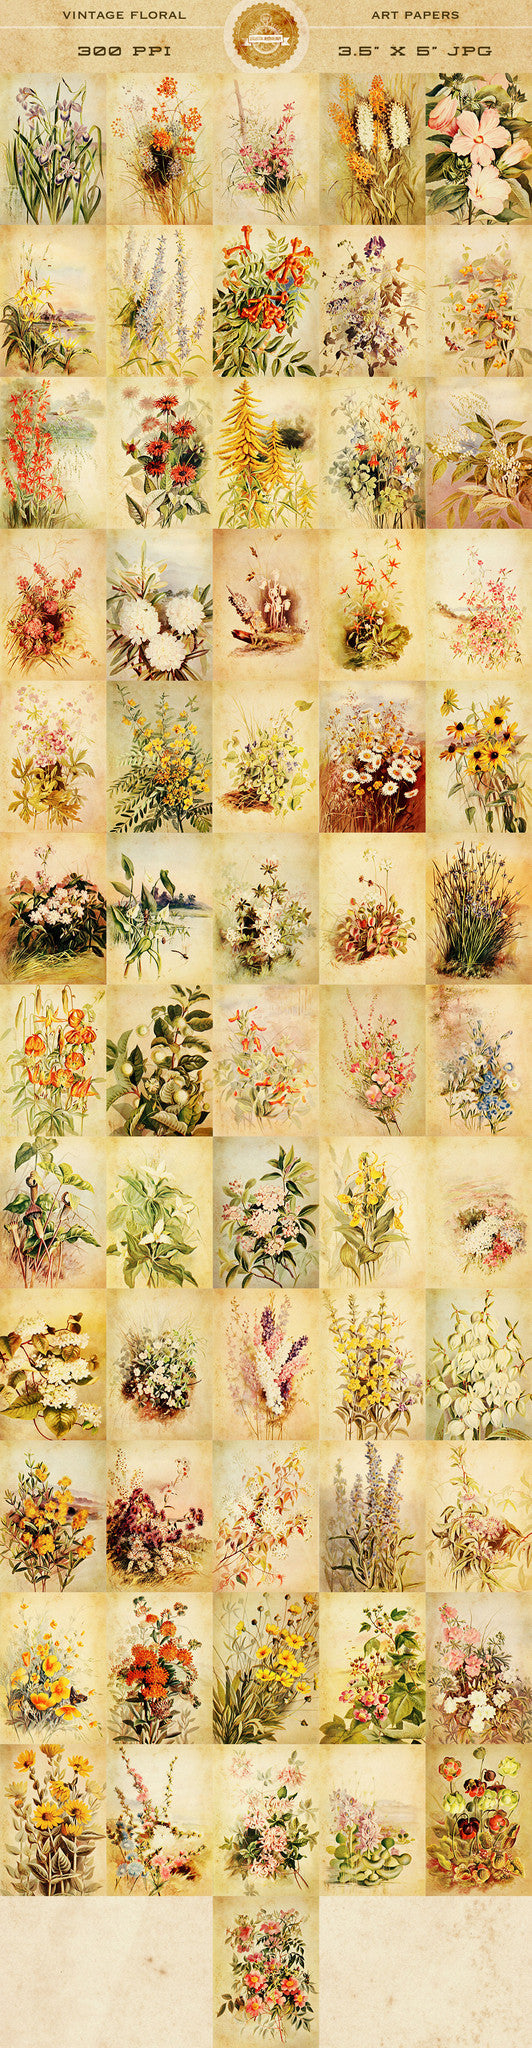 Vintage Floral Art Papers Graphics